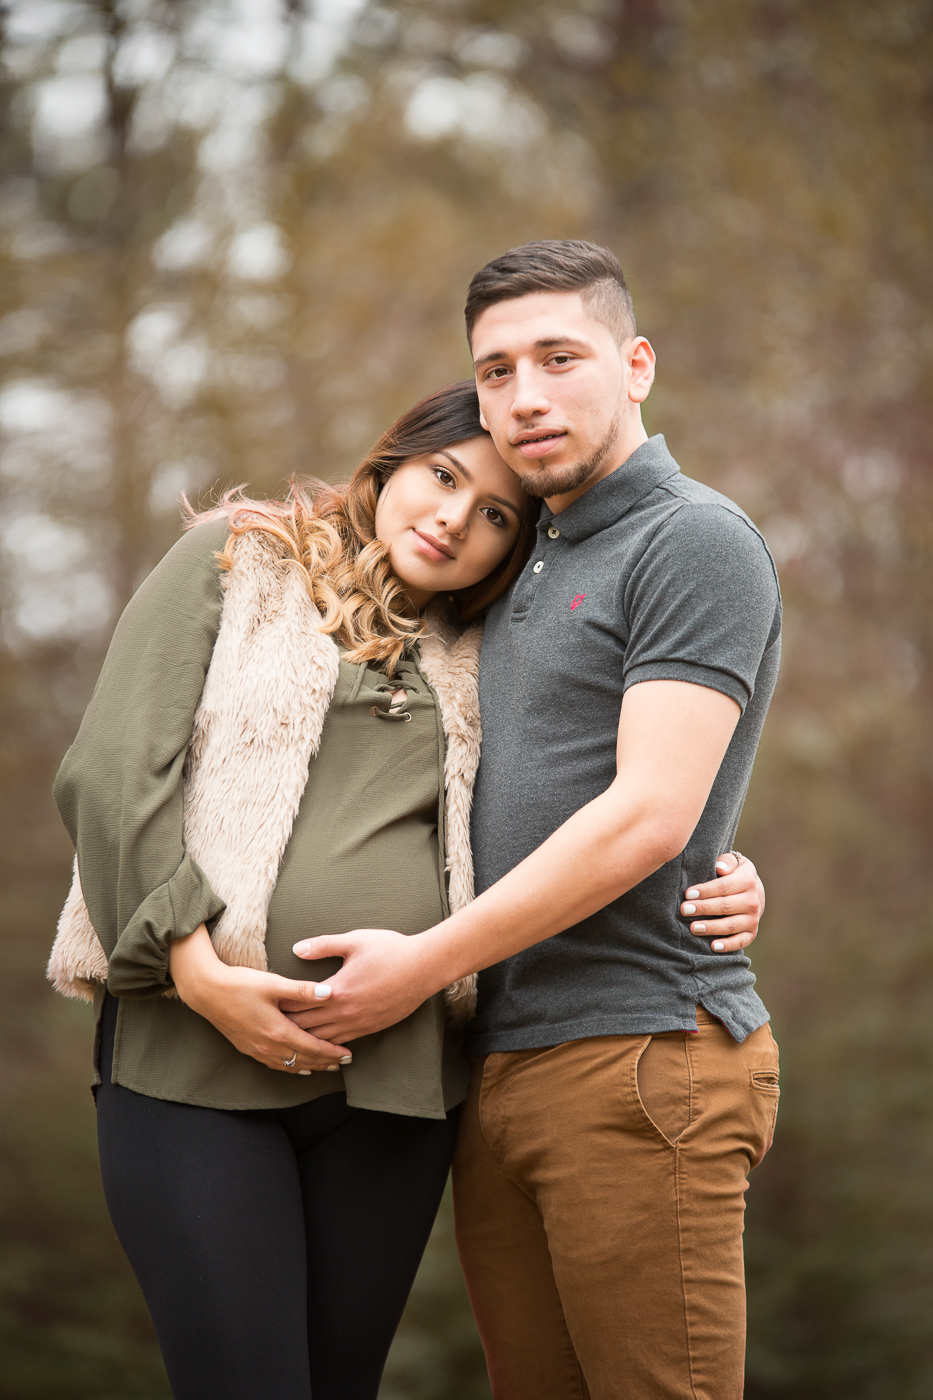 Atlanta Gwinnett Maternity Photography.jpg